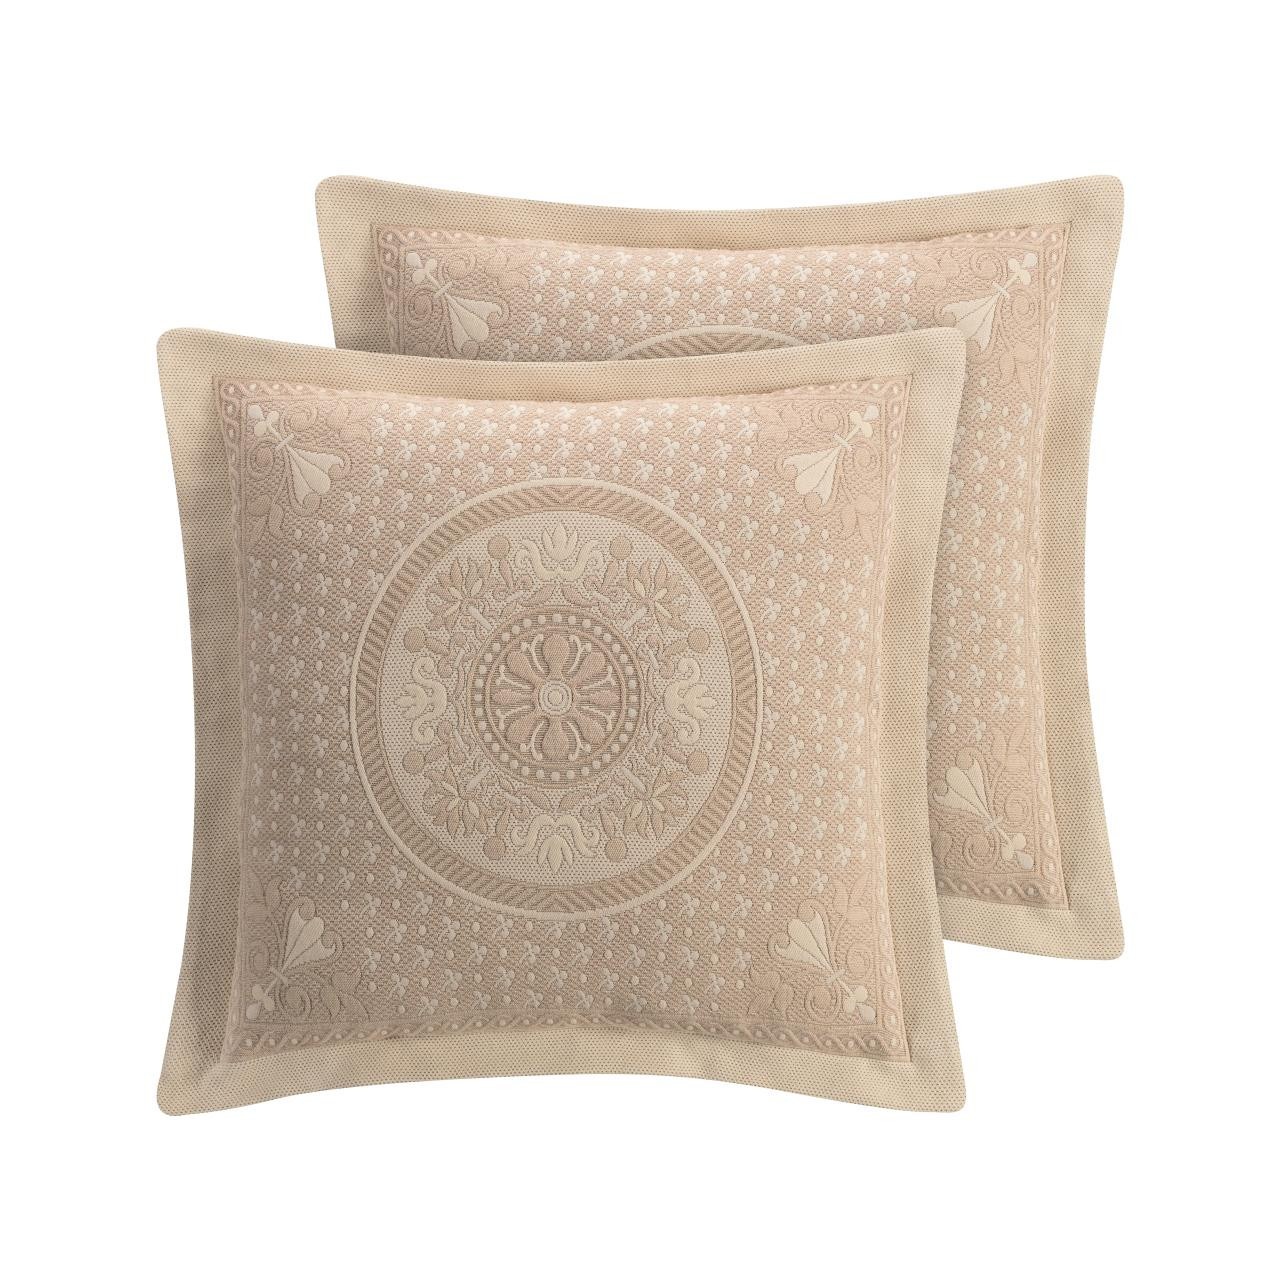 Basset Linen Euro Sham By Williamsburg Paul S Home Fashions